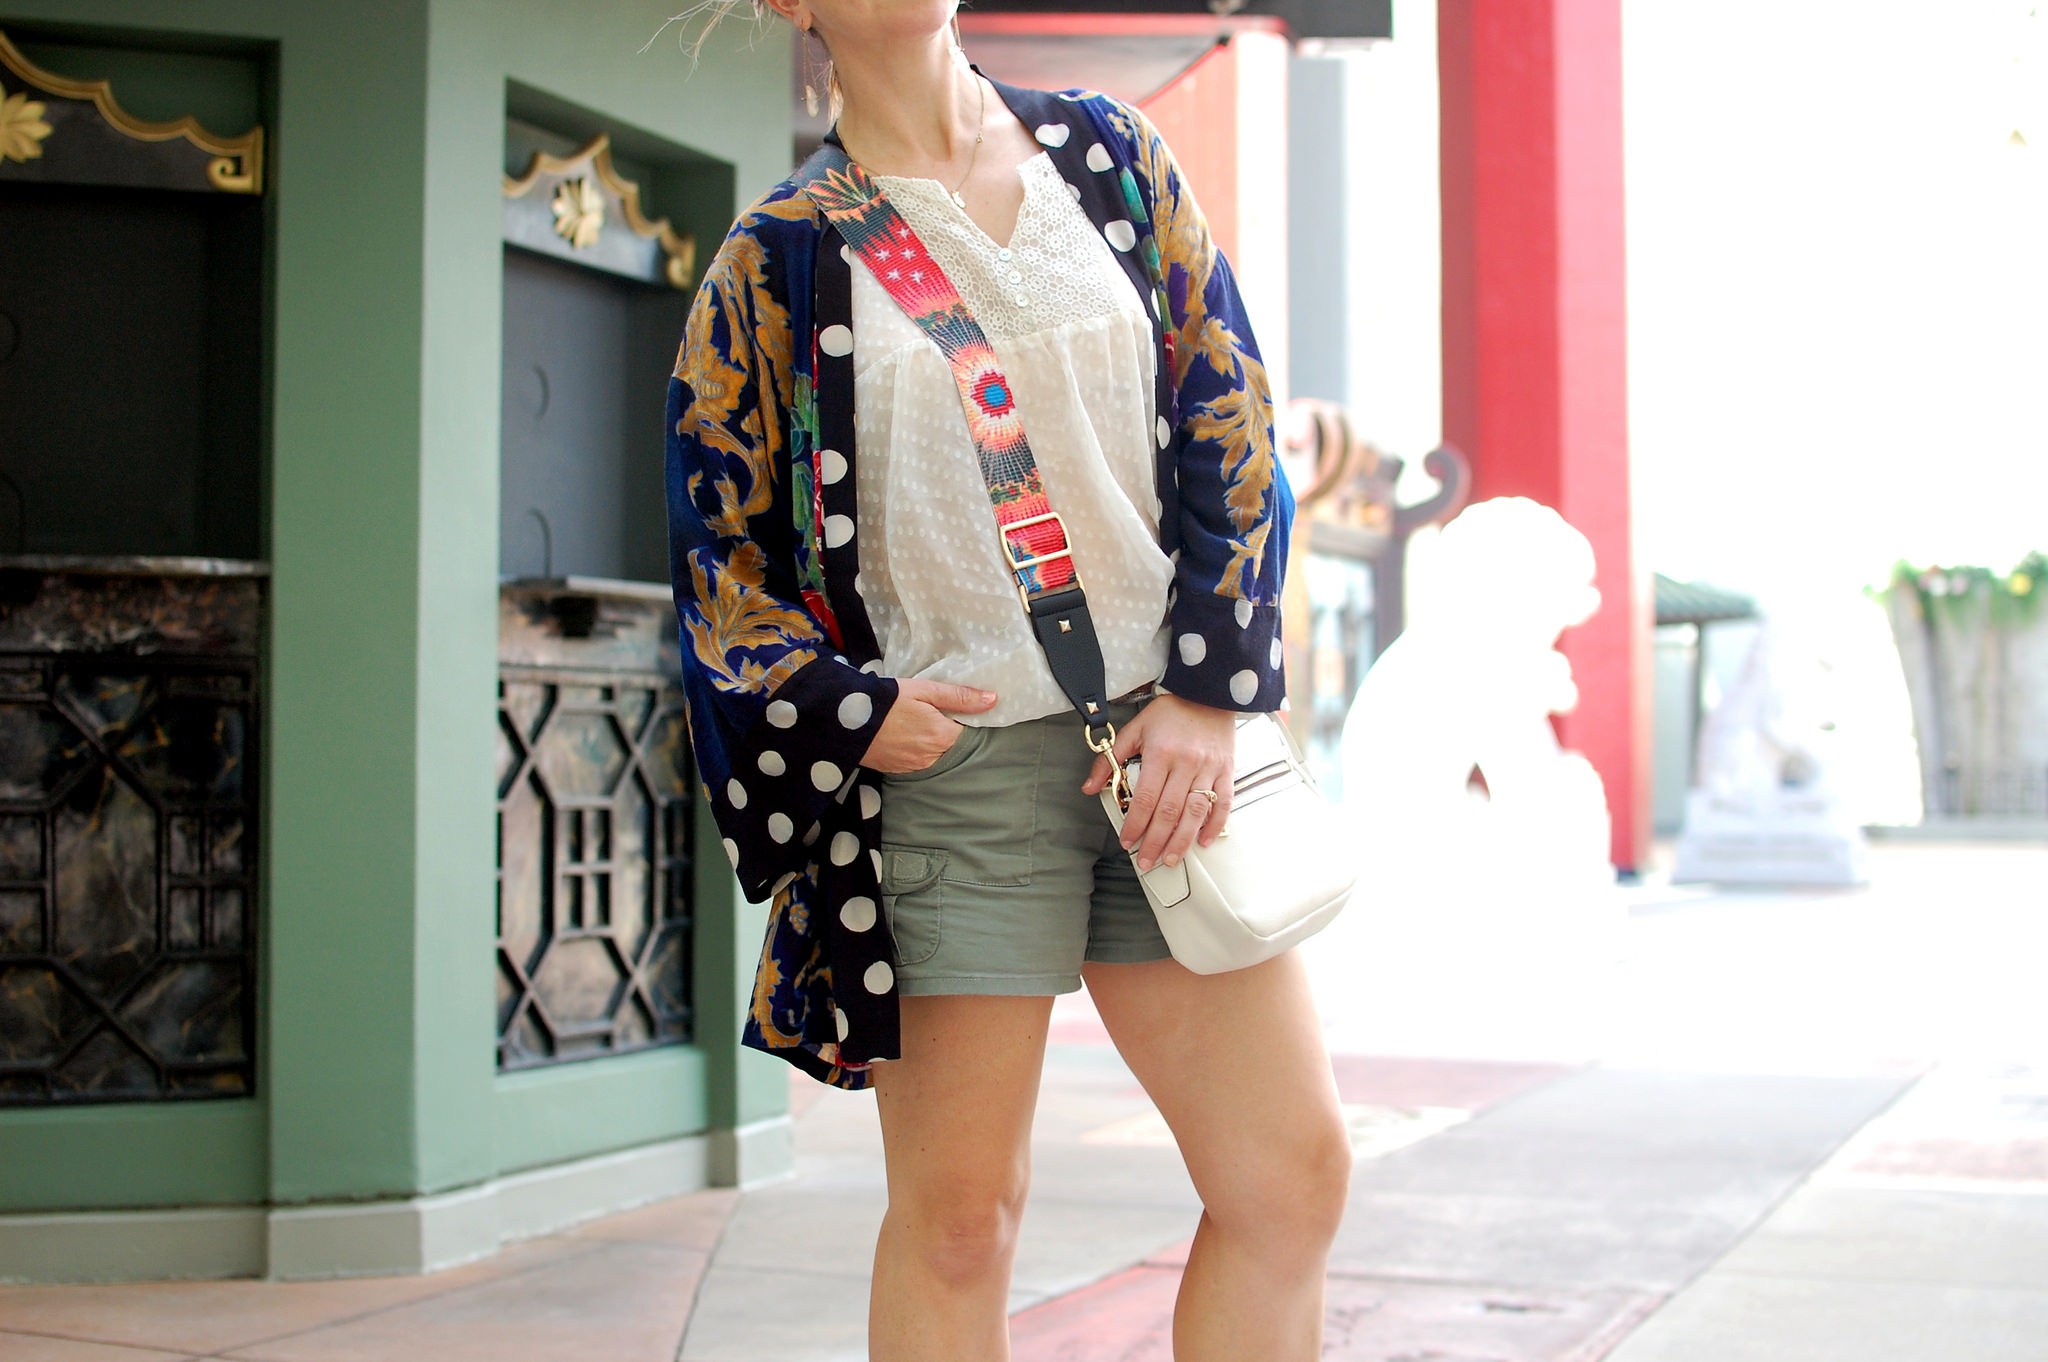 hollywood studios disney world tourist outfit kimono daily outfit blog ootd whatiwore2day